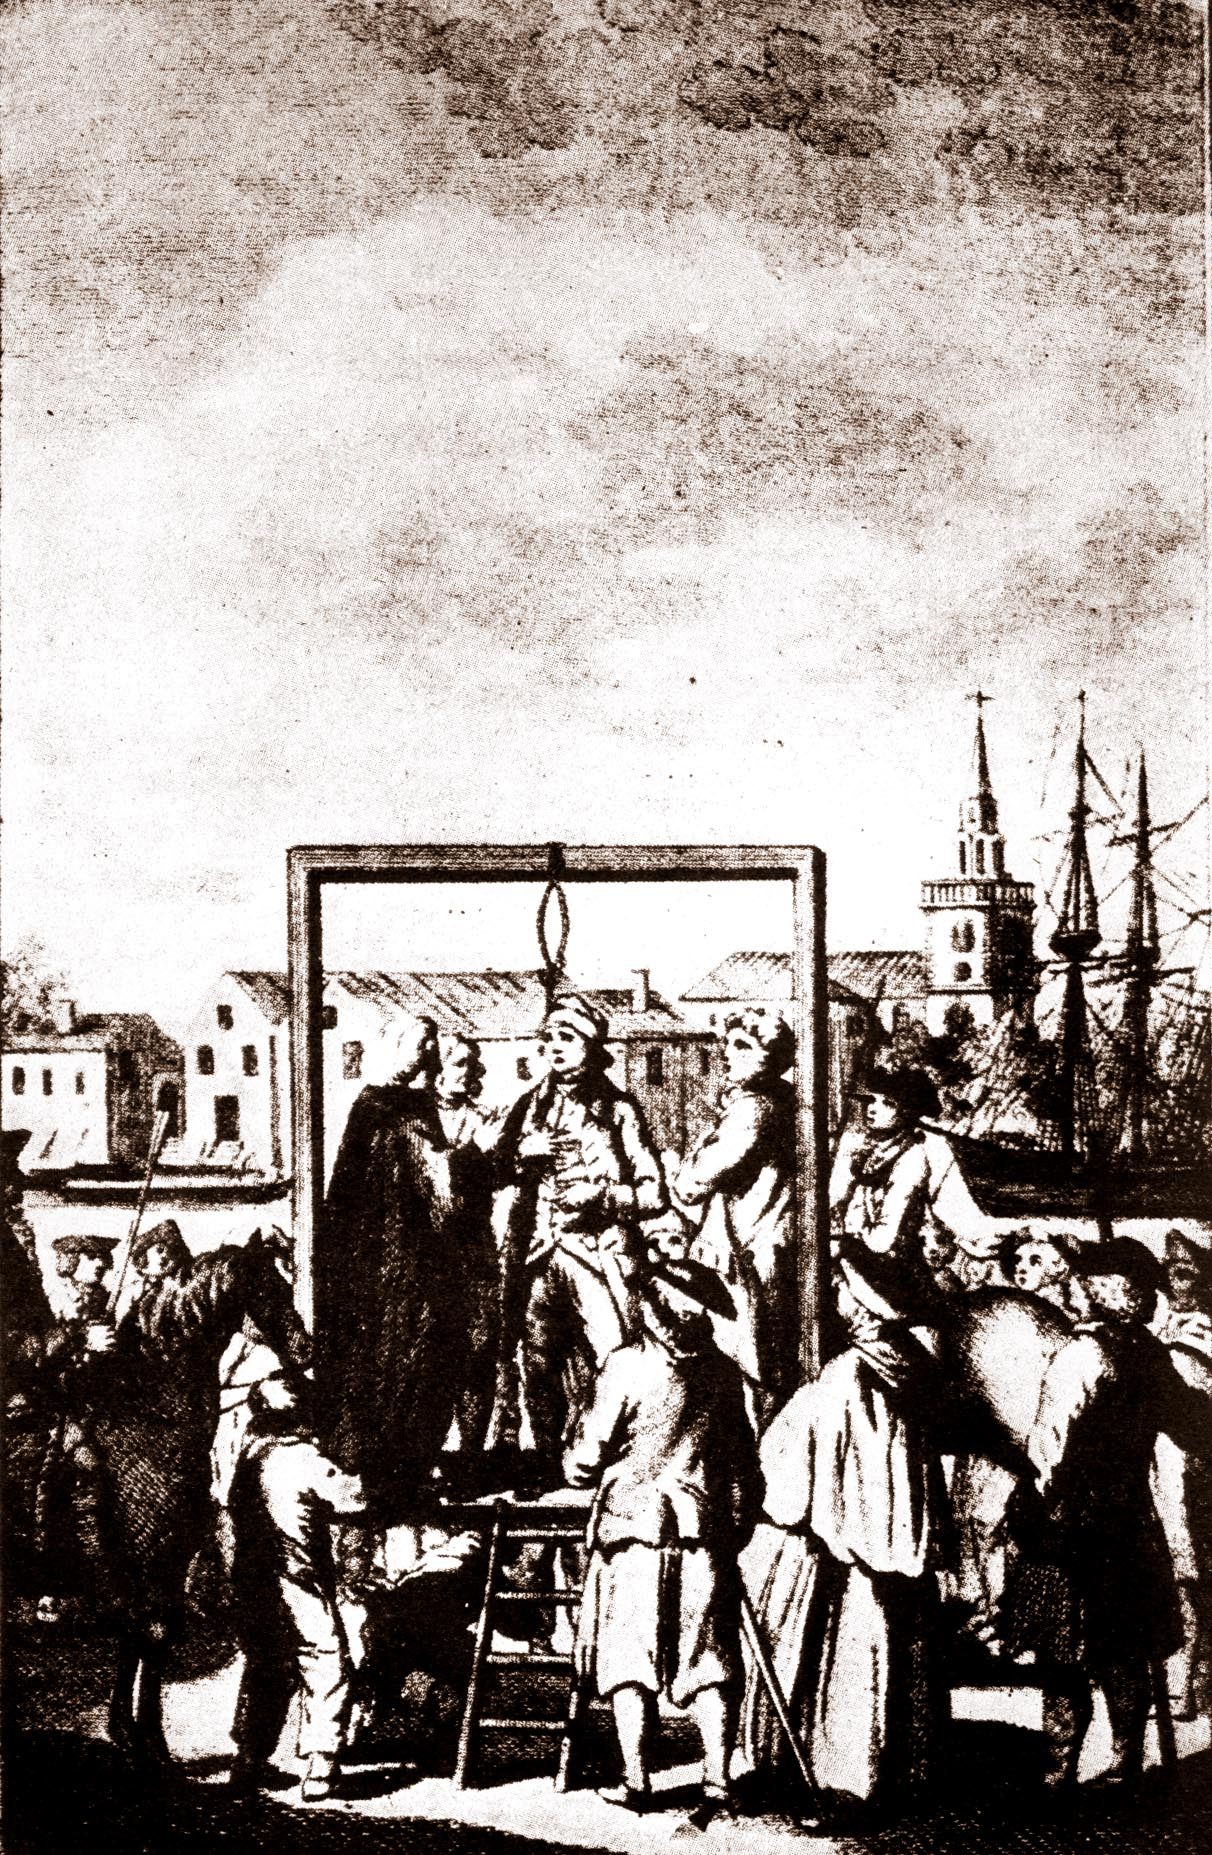 Depiction of a hanging at Execution Dock.  https://commons.wikimedia.org/wiki/File:Executiondock.jpg?uselang=en-gb